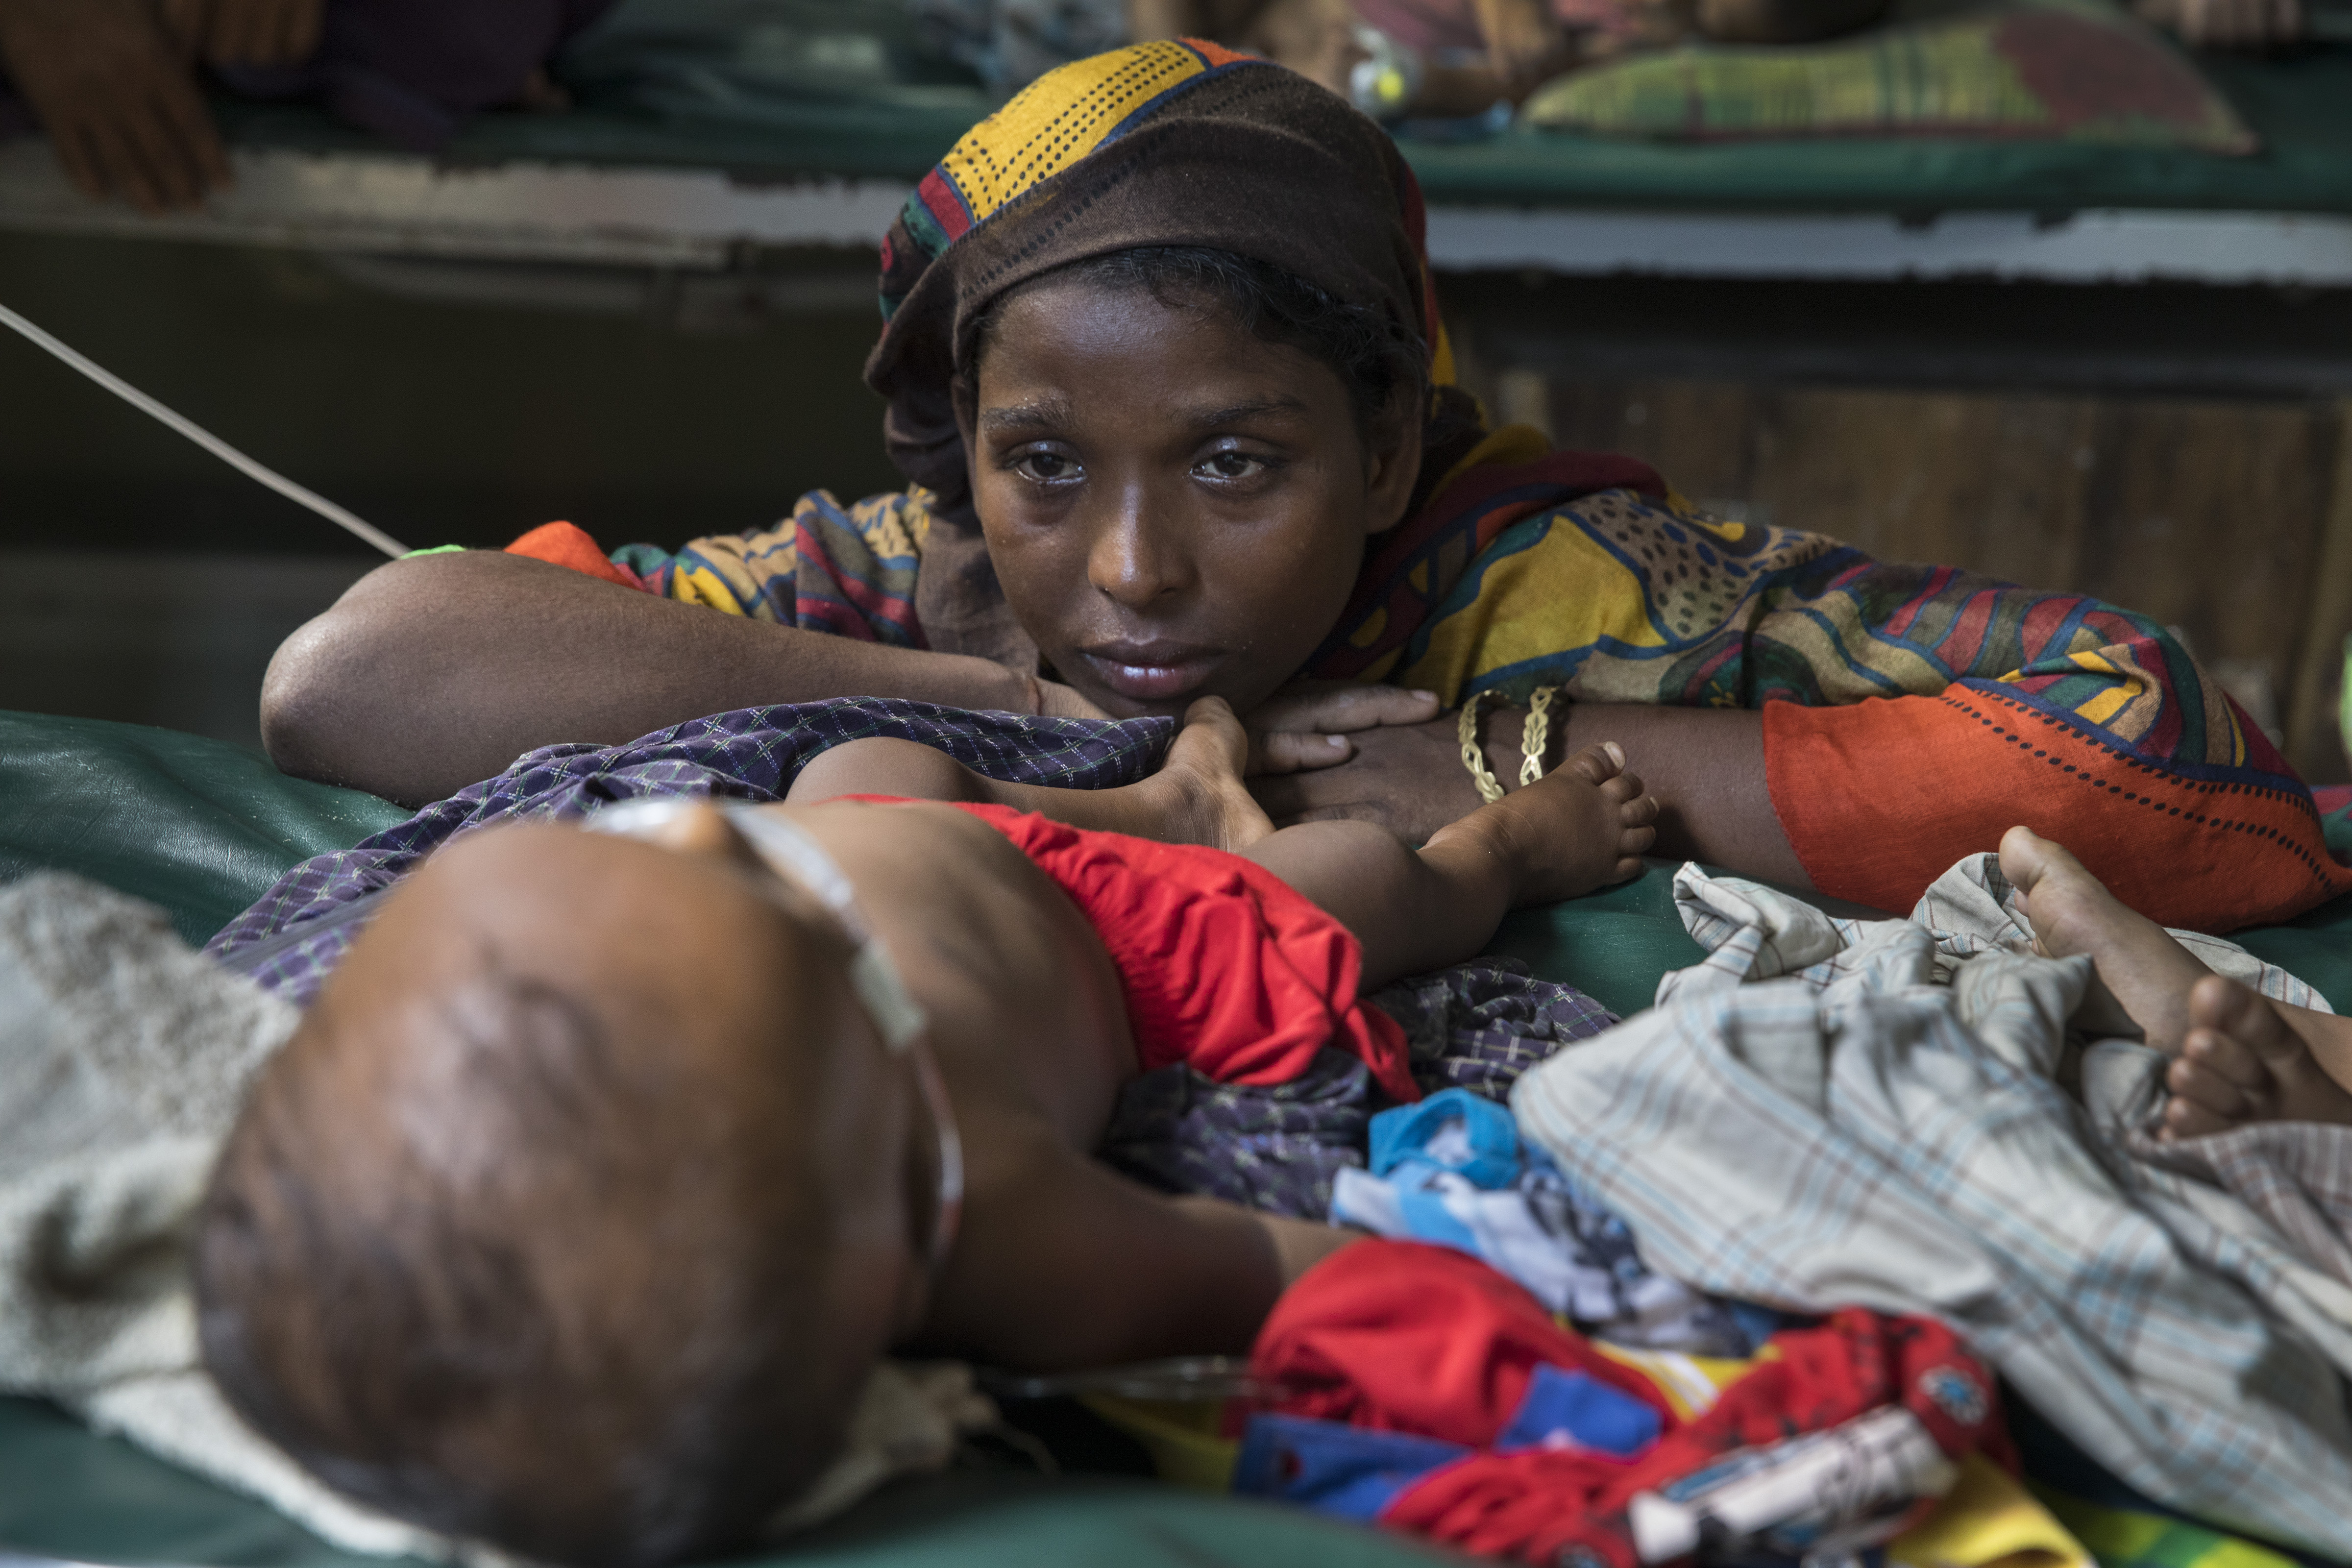 Hasina worries over her son, Mohammed Anas, 11 months, suffering from acute pneumonia in the pediatric neonatal unit at the 'Doctors Without Borders' Kutupalong clinic Cox's Bazar, Bangladesh on Oct. 4, 2017.